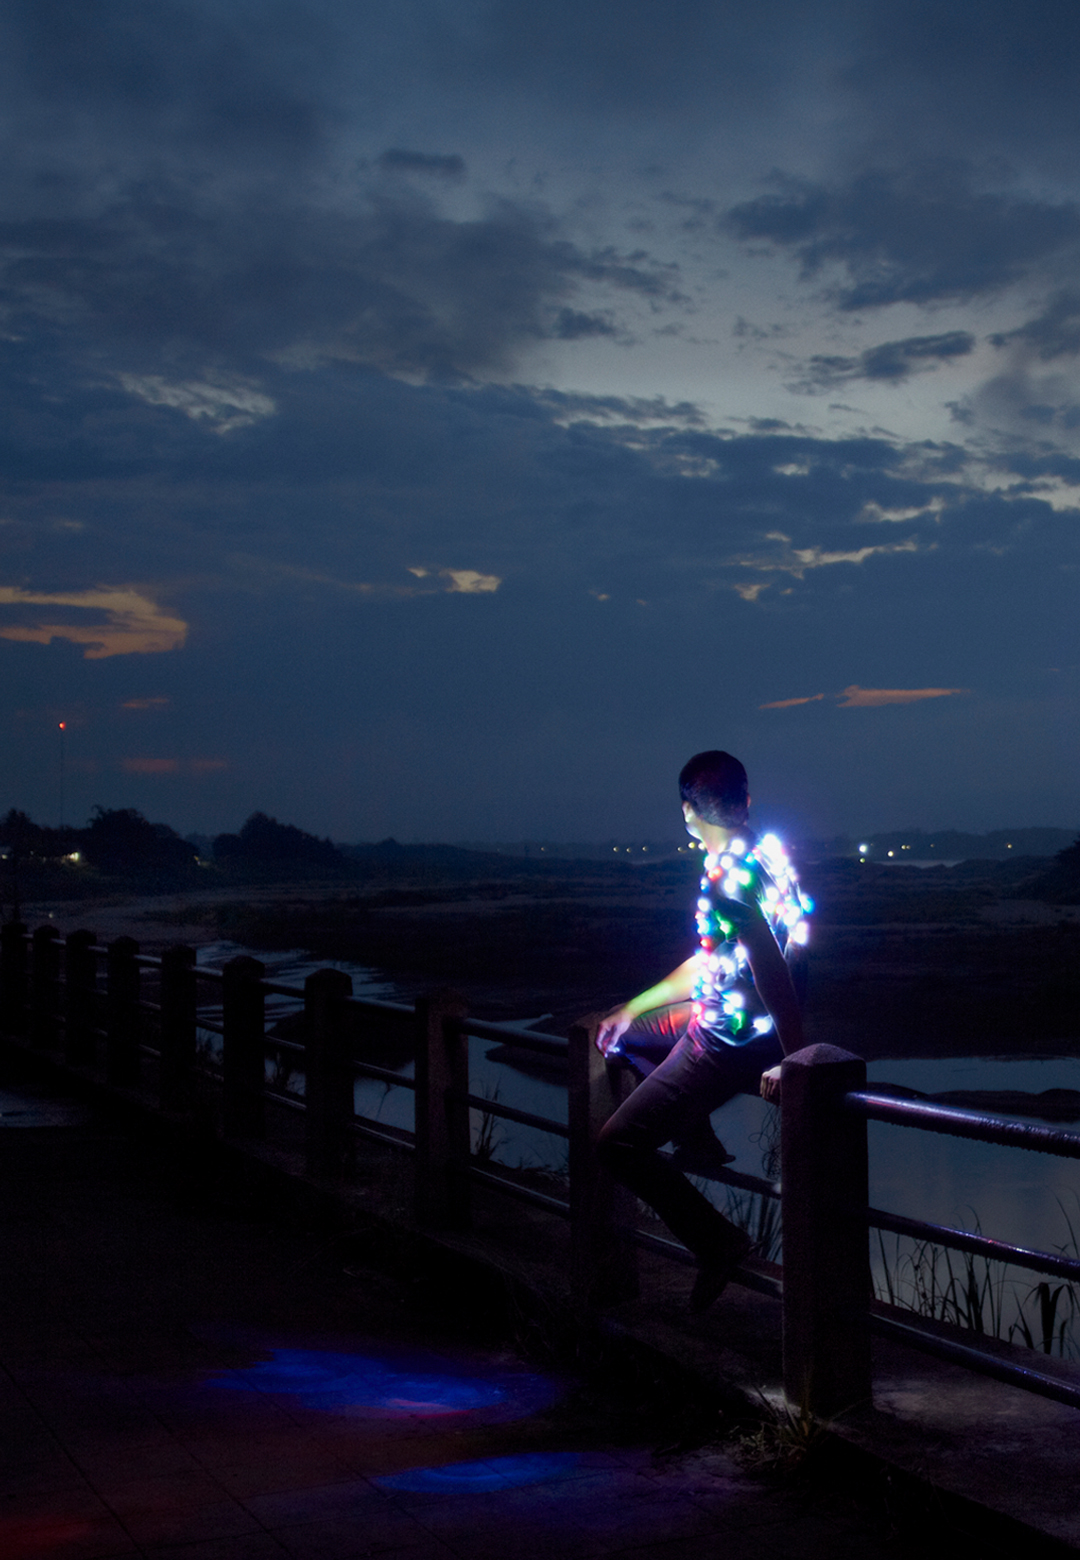 'Power Boy (Mekong), 1500mm x 2250mm, Lightjet Print, by Apichatpong Weerasethakul, 2011| Artes Mundi| STIR